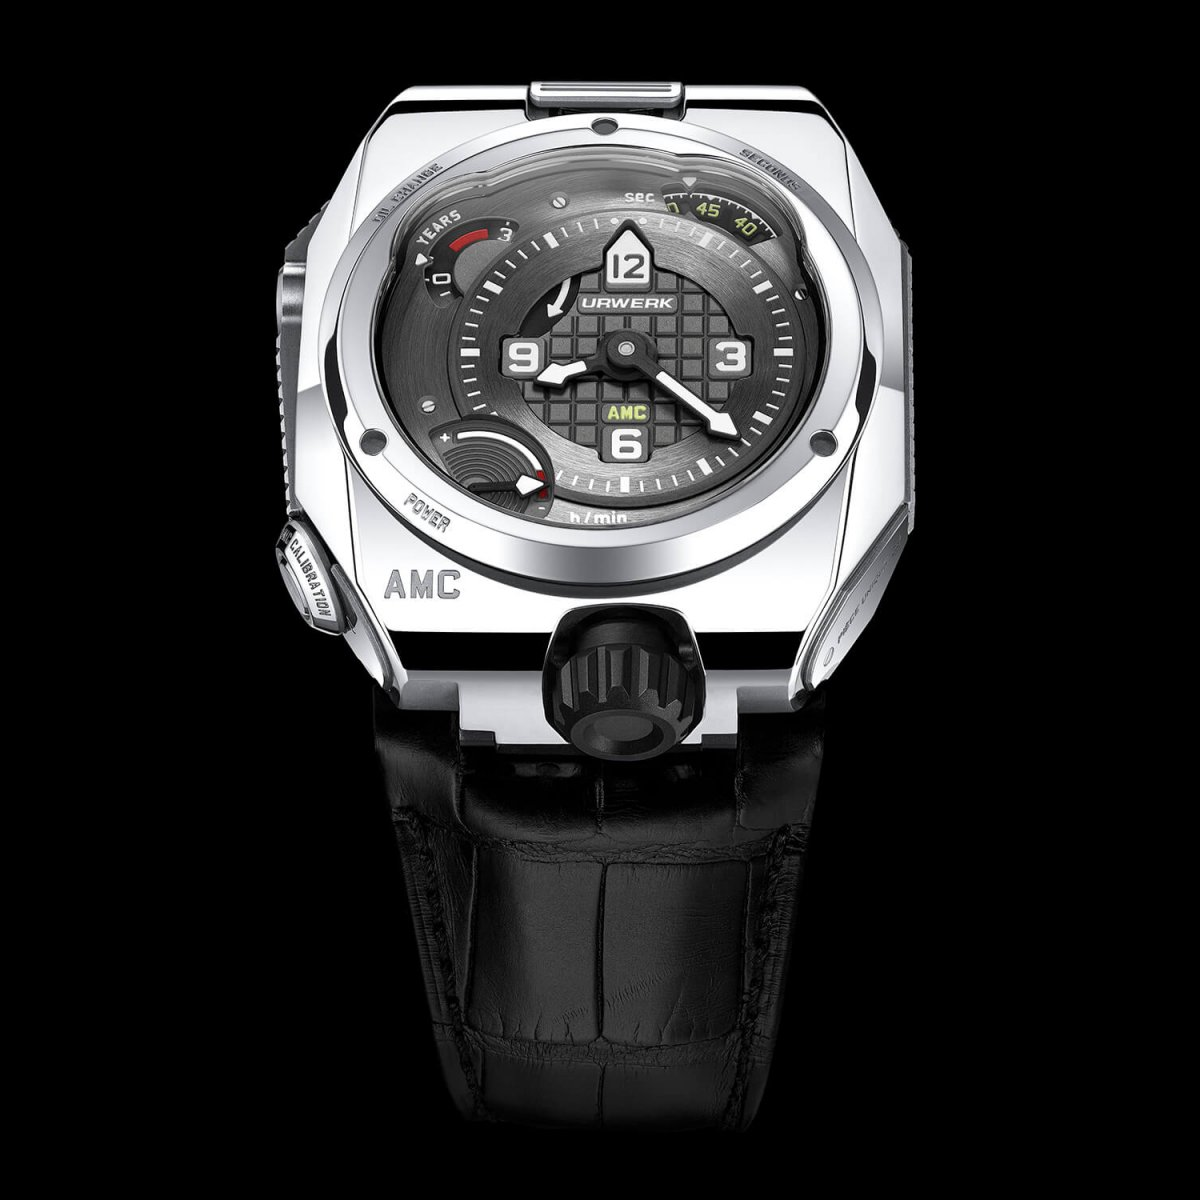 Swiss timepieces Chronometry watch AMC